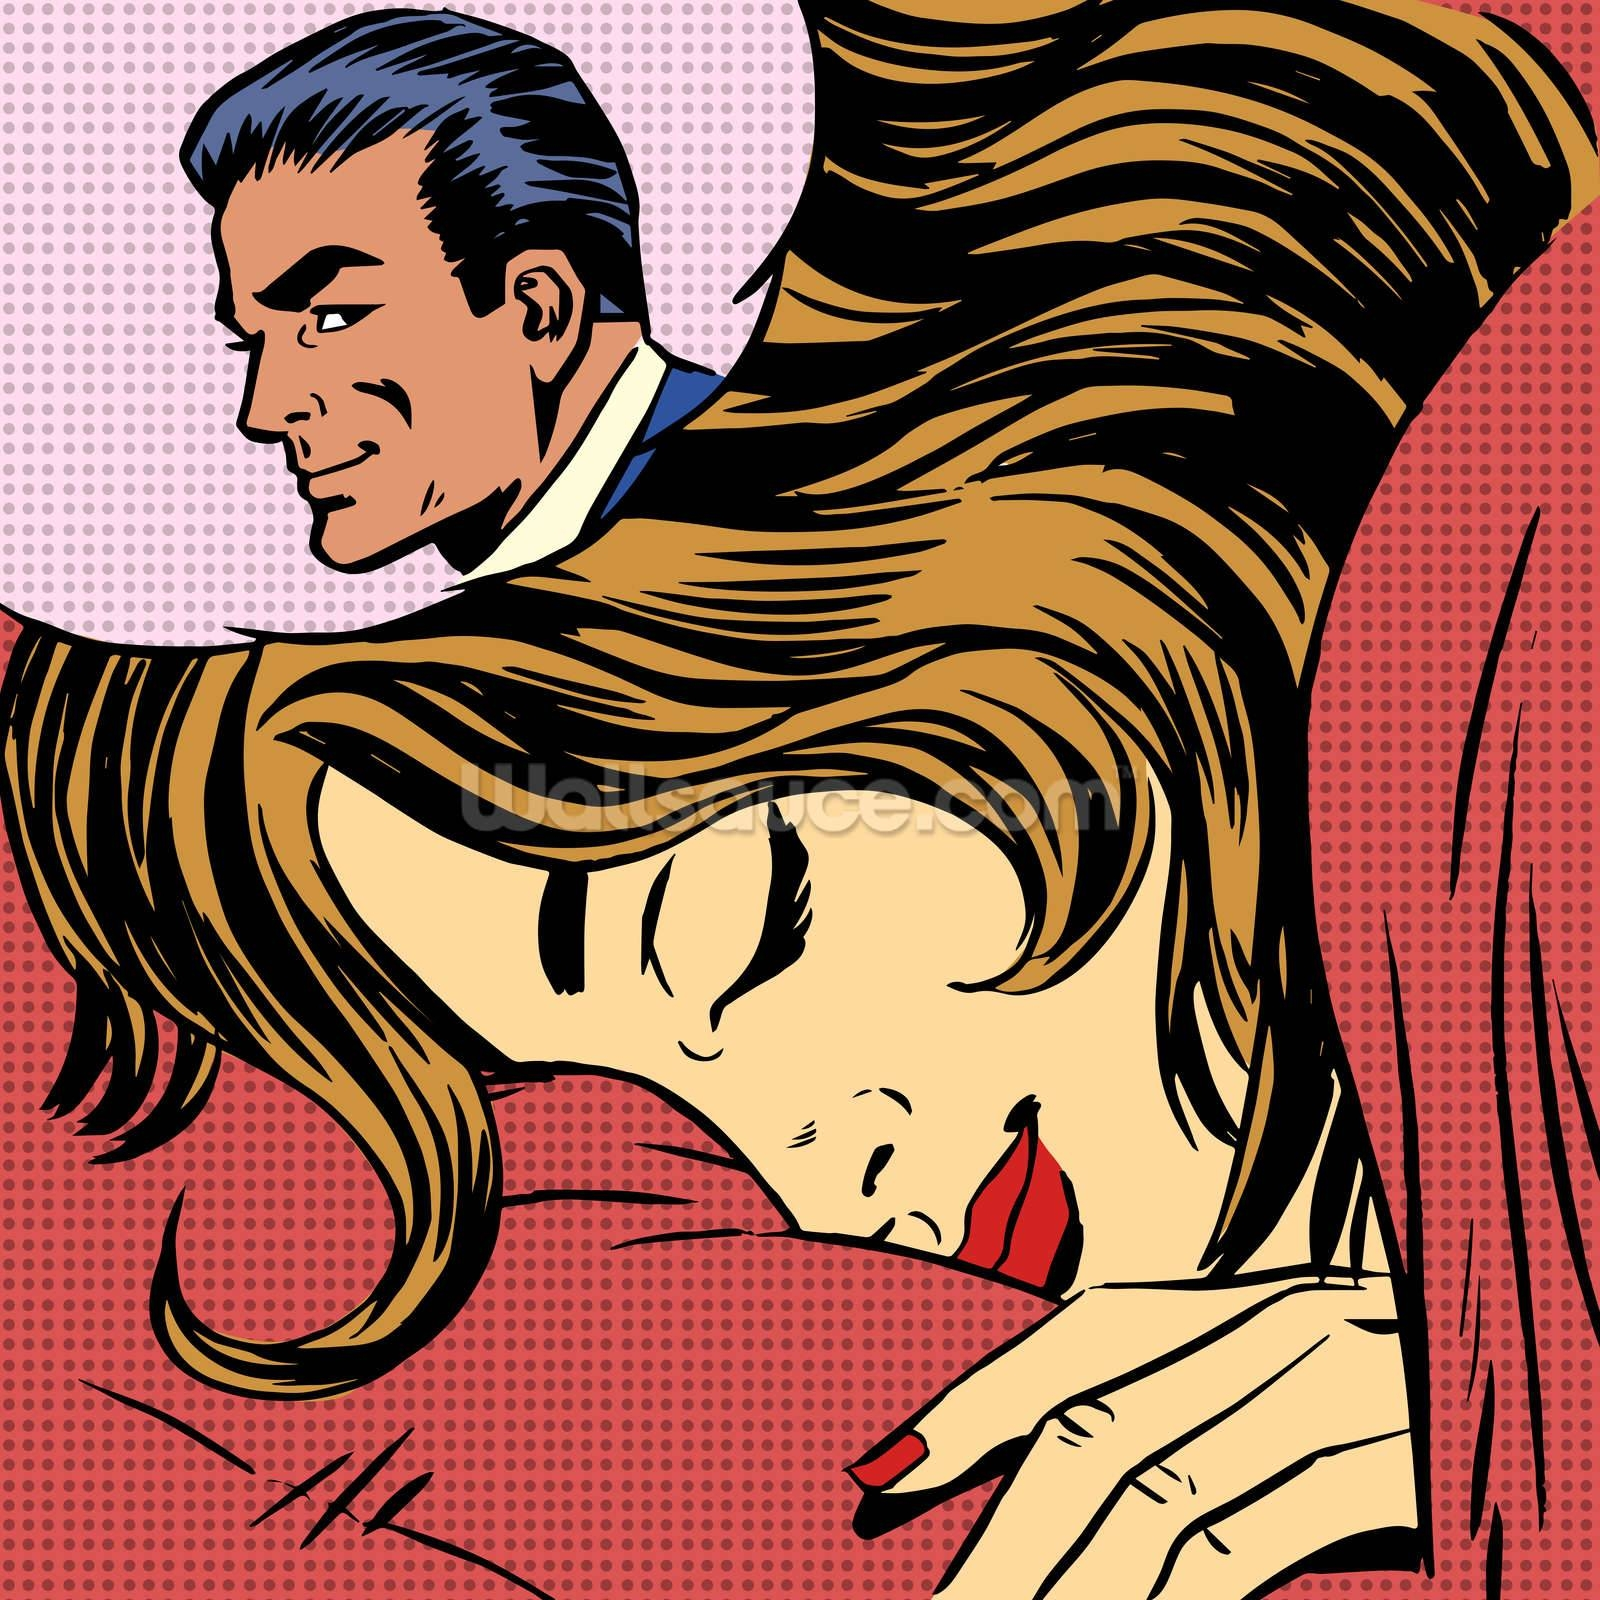 Pop Art Dream Romance Wallpaper Wall Mural | Wallsauce Europe For Most Recent Pop Art Wallpaper For Walls (View 8 of 20)